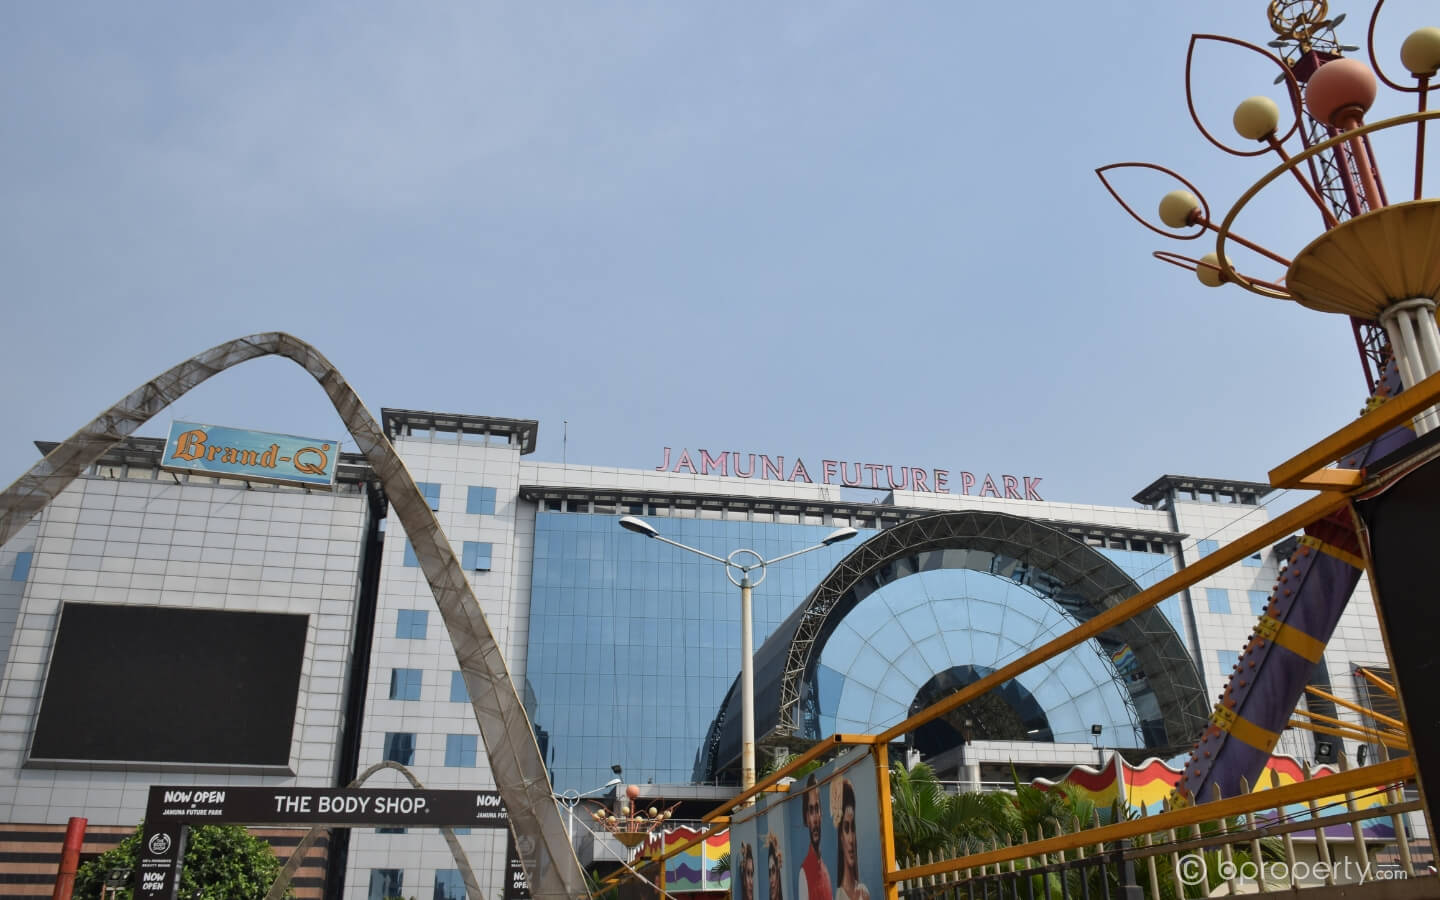 Jamuna Future Park recently emerged as a great place to find warm clothes